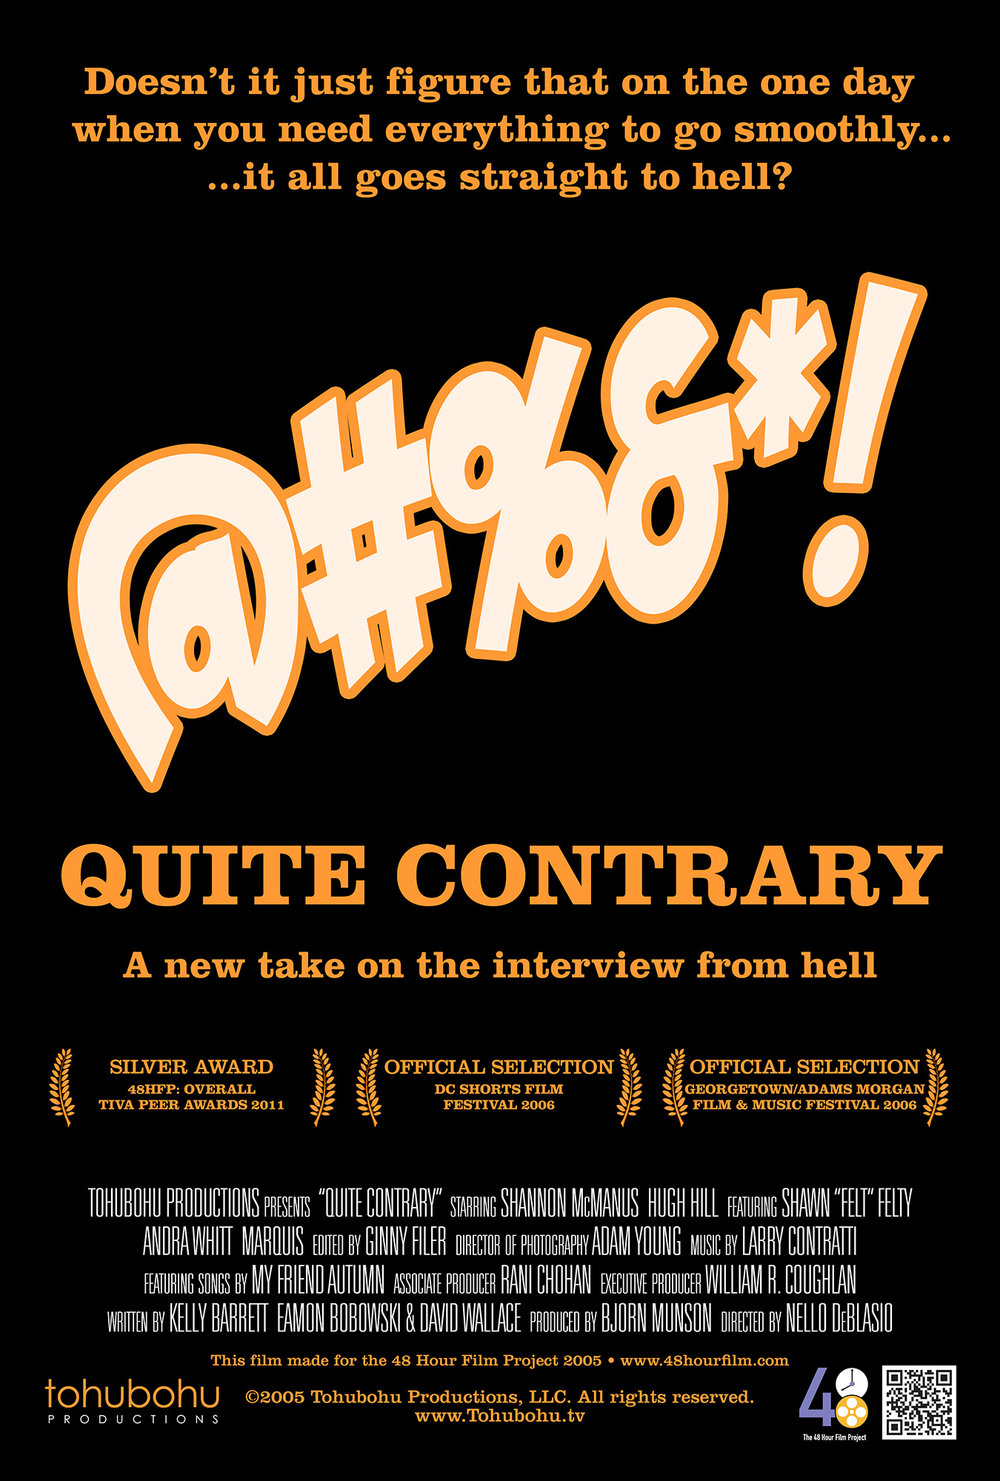 "Quite Contrary - 2005 · 7:49 · written by Kelly Barrett, Eamon Bobowski & David Wallace · produced by Bjorn Munson · directed by Nello DeBlasioMaking a good first impression at a job interview is critical, as Mary well knows. But from the start, fate seems to be working against her. She oversleeps, and has to scramble to get ready. She can't find a taxi, and has to walk from her hotel to the office. She can't get into an overly crowded elevator, and has to take the stairs. But despite the setbacks, she manages to make it to the office on time, only to discover that — before she can utter a single syllable — the atmosphere is quite contrary to what one would normally expect. And that atmosphere becomes more bizarre with each passing moment.""Quite Contrary"" — a comedy — was Tohubohu's second entry in the 2005 48 Hour Film Project, and marked the directorial debut (on film, anyway) of Tohubohu acting veteran Nello DeBlasio. It, too, was written, shot, and edited over the weekend of April 29–May 1, 2005, and was first screened at the AFI Silver Theatre on Wednesday, May 4."